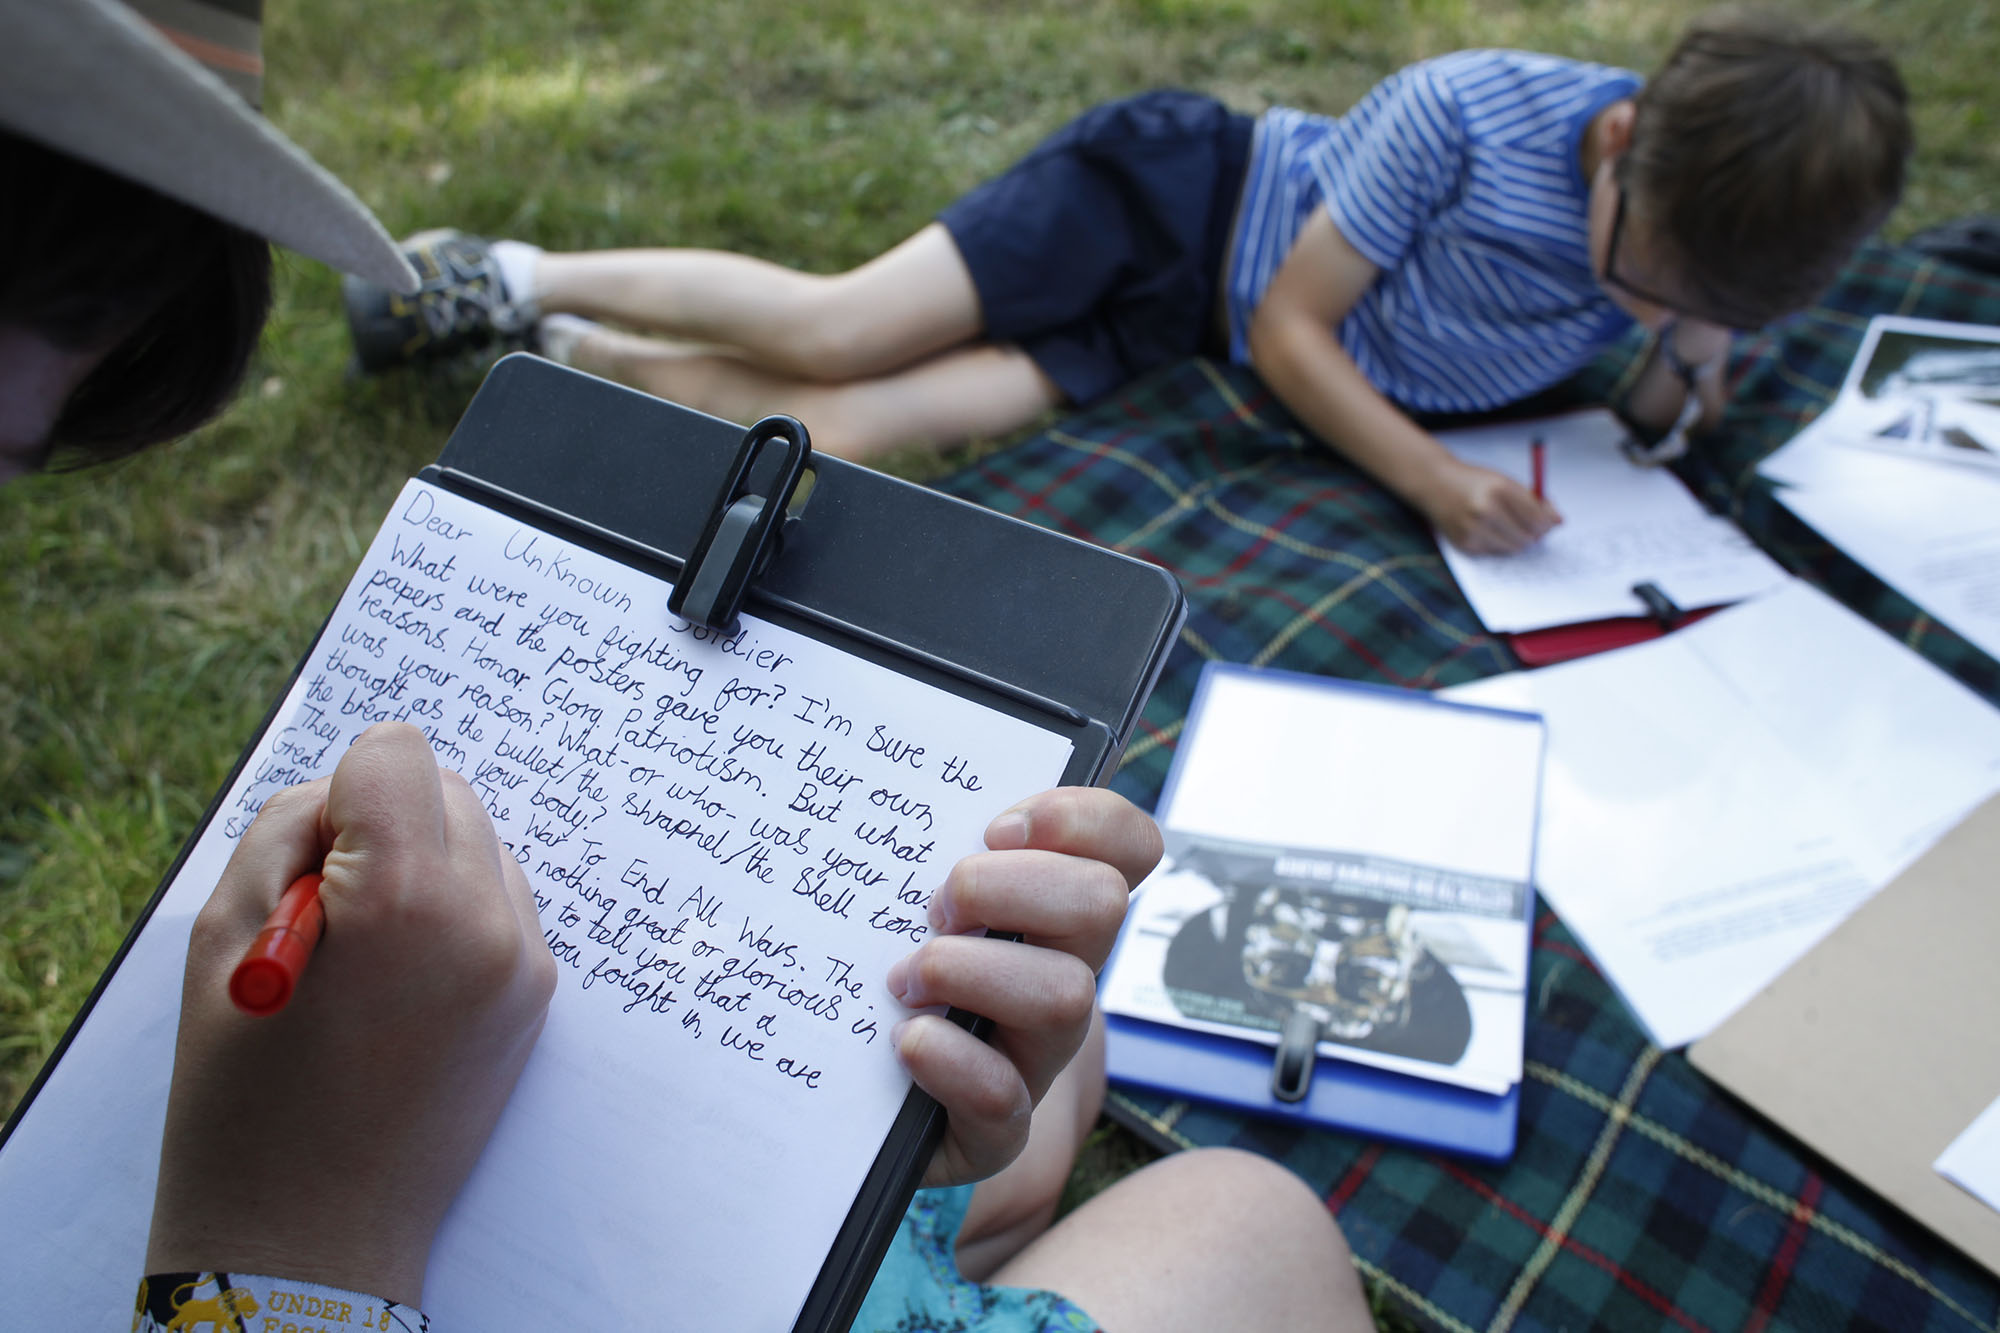 LETTER TO AN UNKNOWN SOLDIER at WOMAD, 2014. Image credit - Gideon Mendel